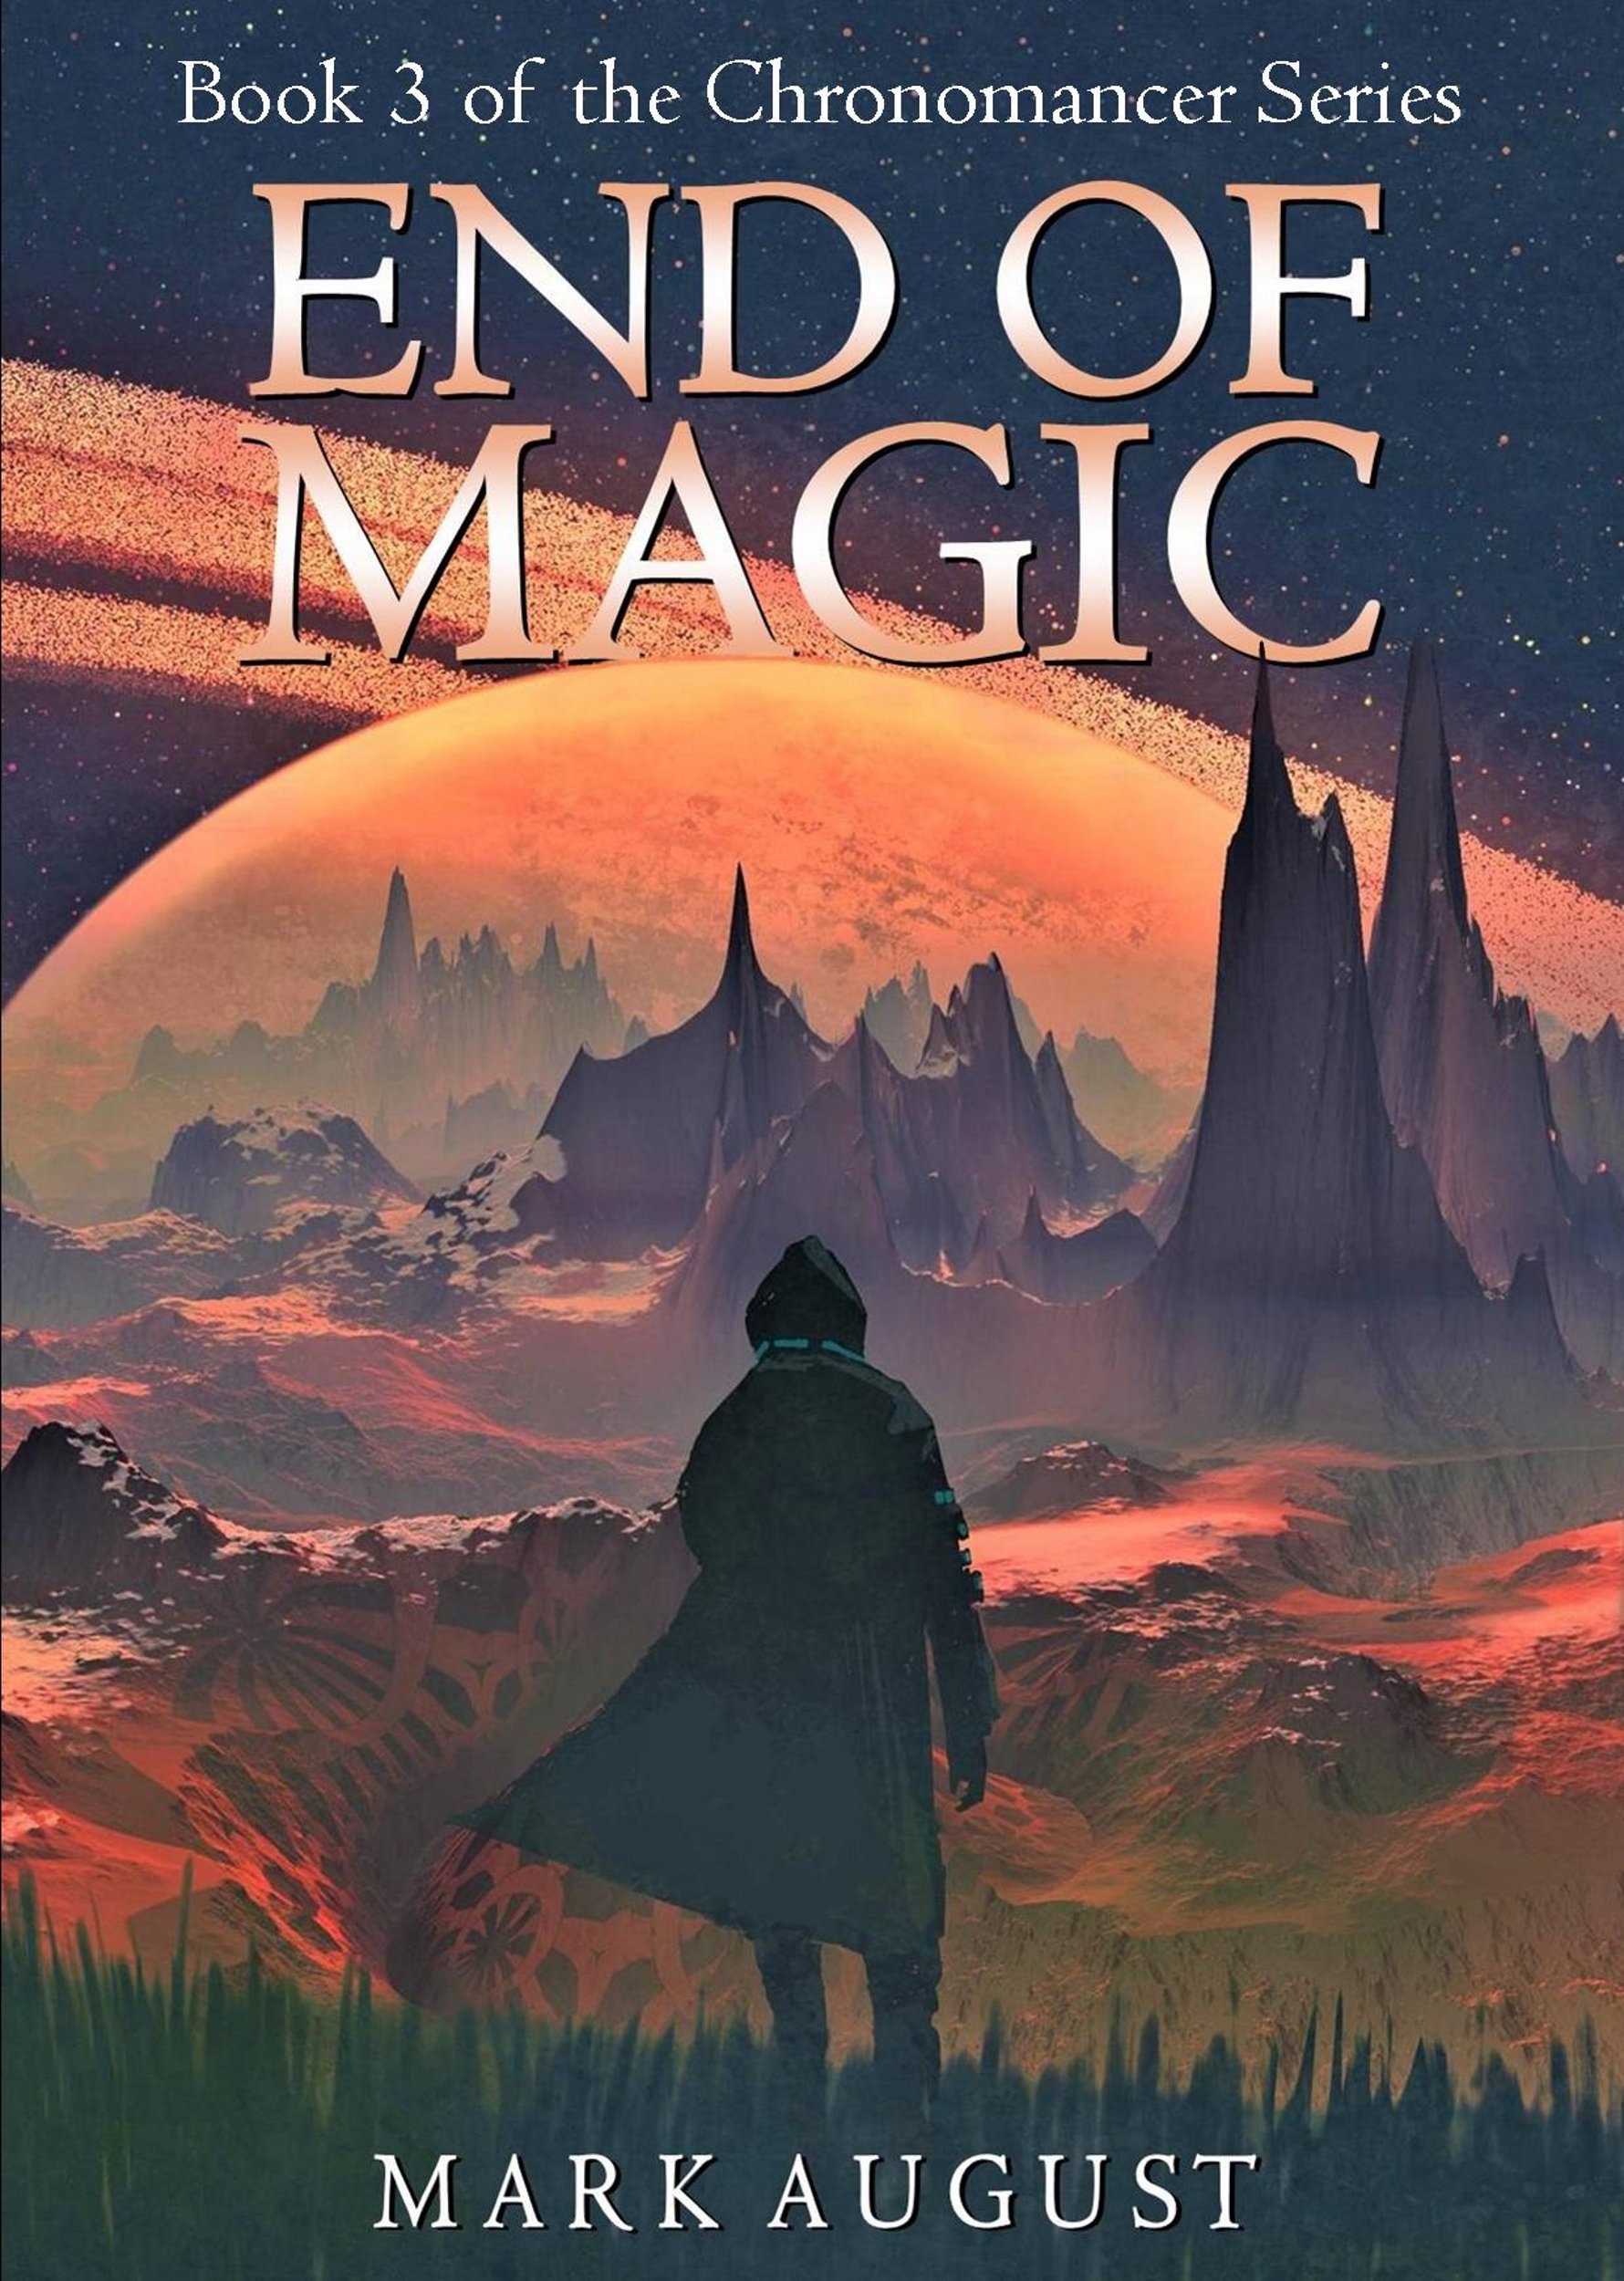 ENDOFMAGIC